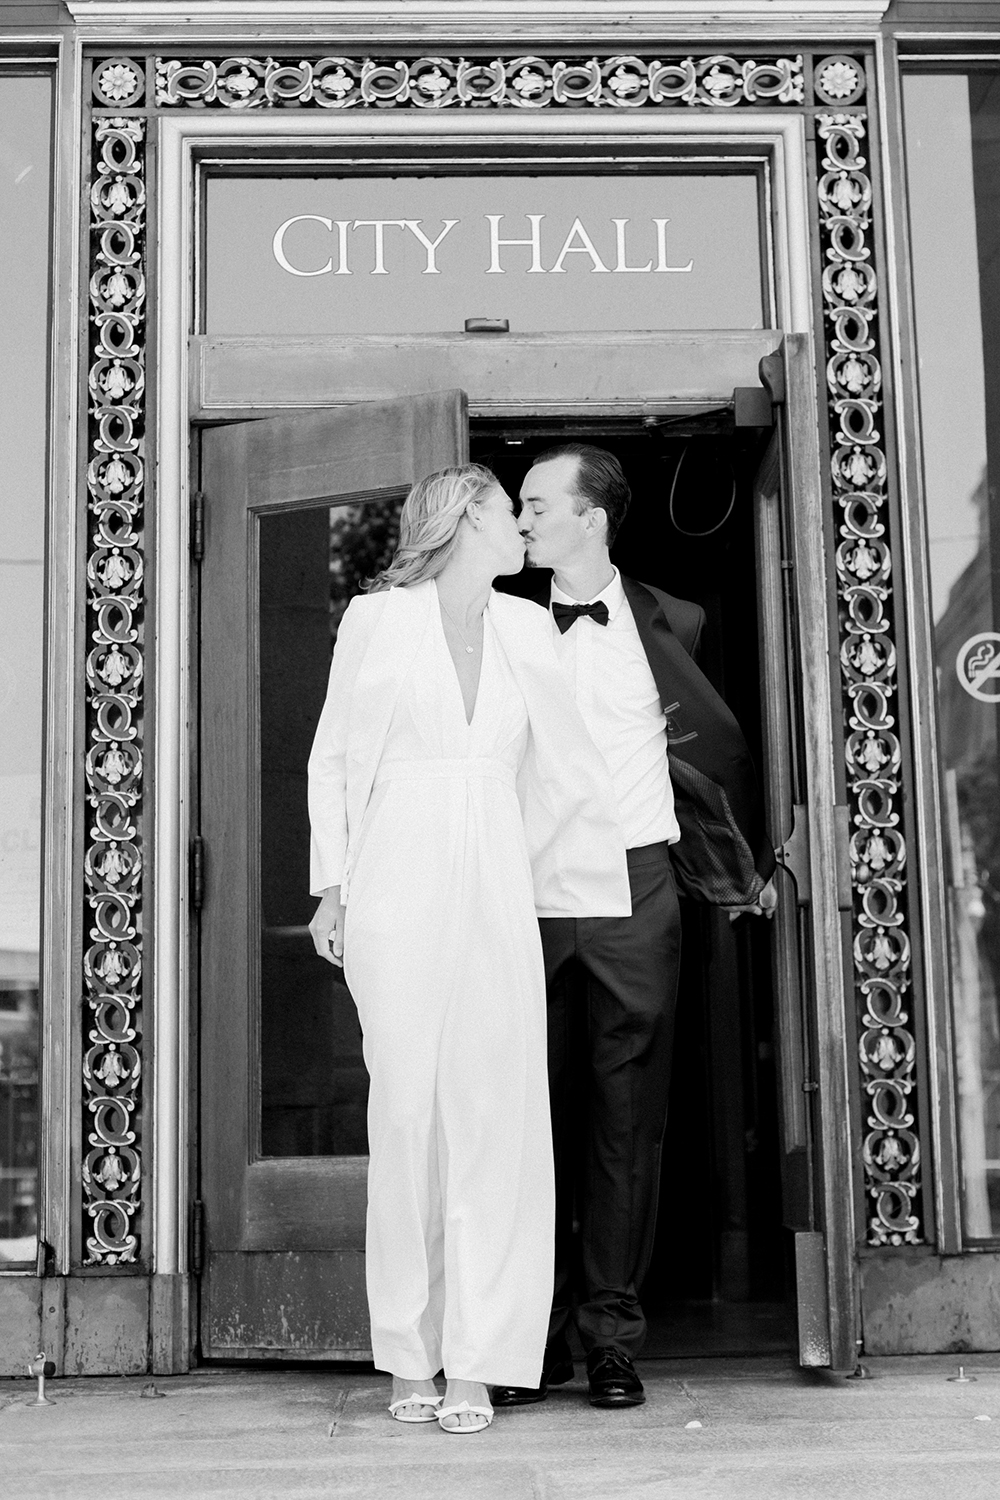 san-francisco-city-hall-wedding-chris-claire-26.jpg